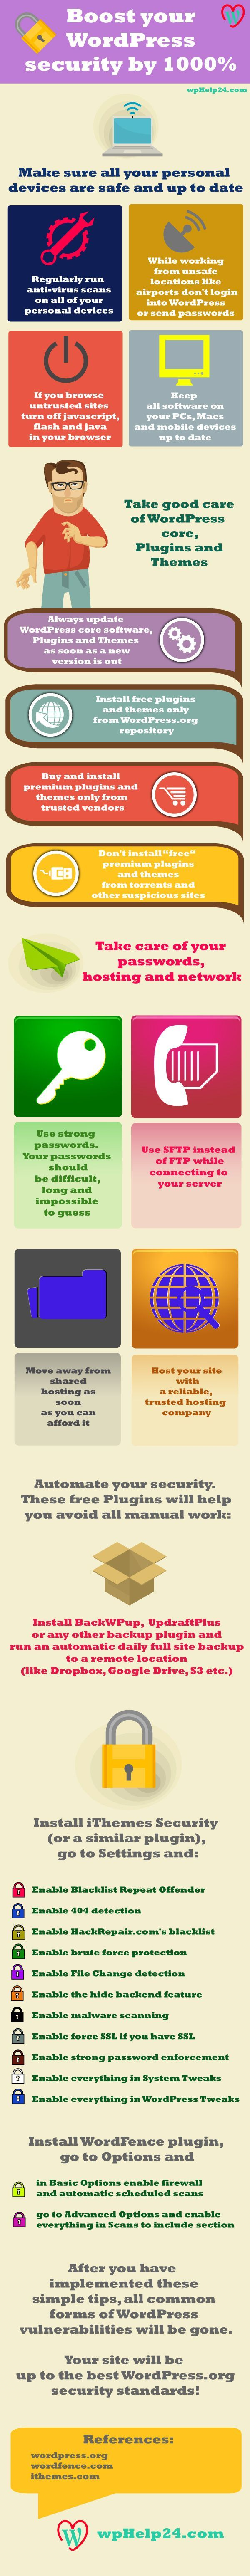 "Infographic: How to protect your WordPress site from hackers and boost security by 1000 %. Don't install ""free"" premium WordPress plugins and themes from torrents and other suspicious sites. Host your #WordPress #site with a reliable and trusted hosting company. Learn more..."